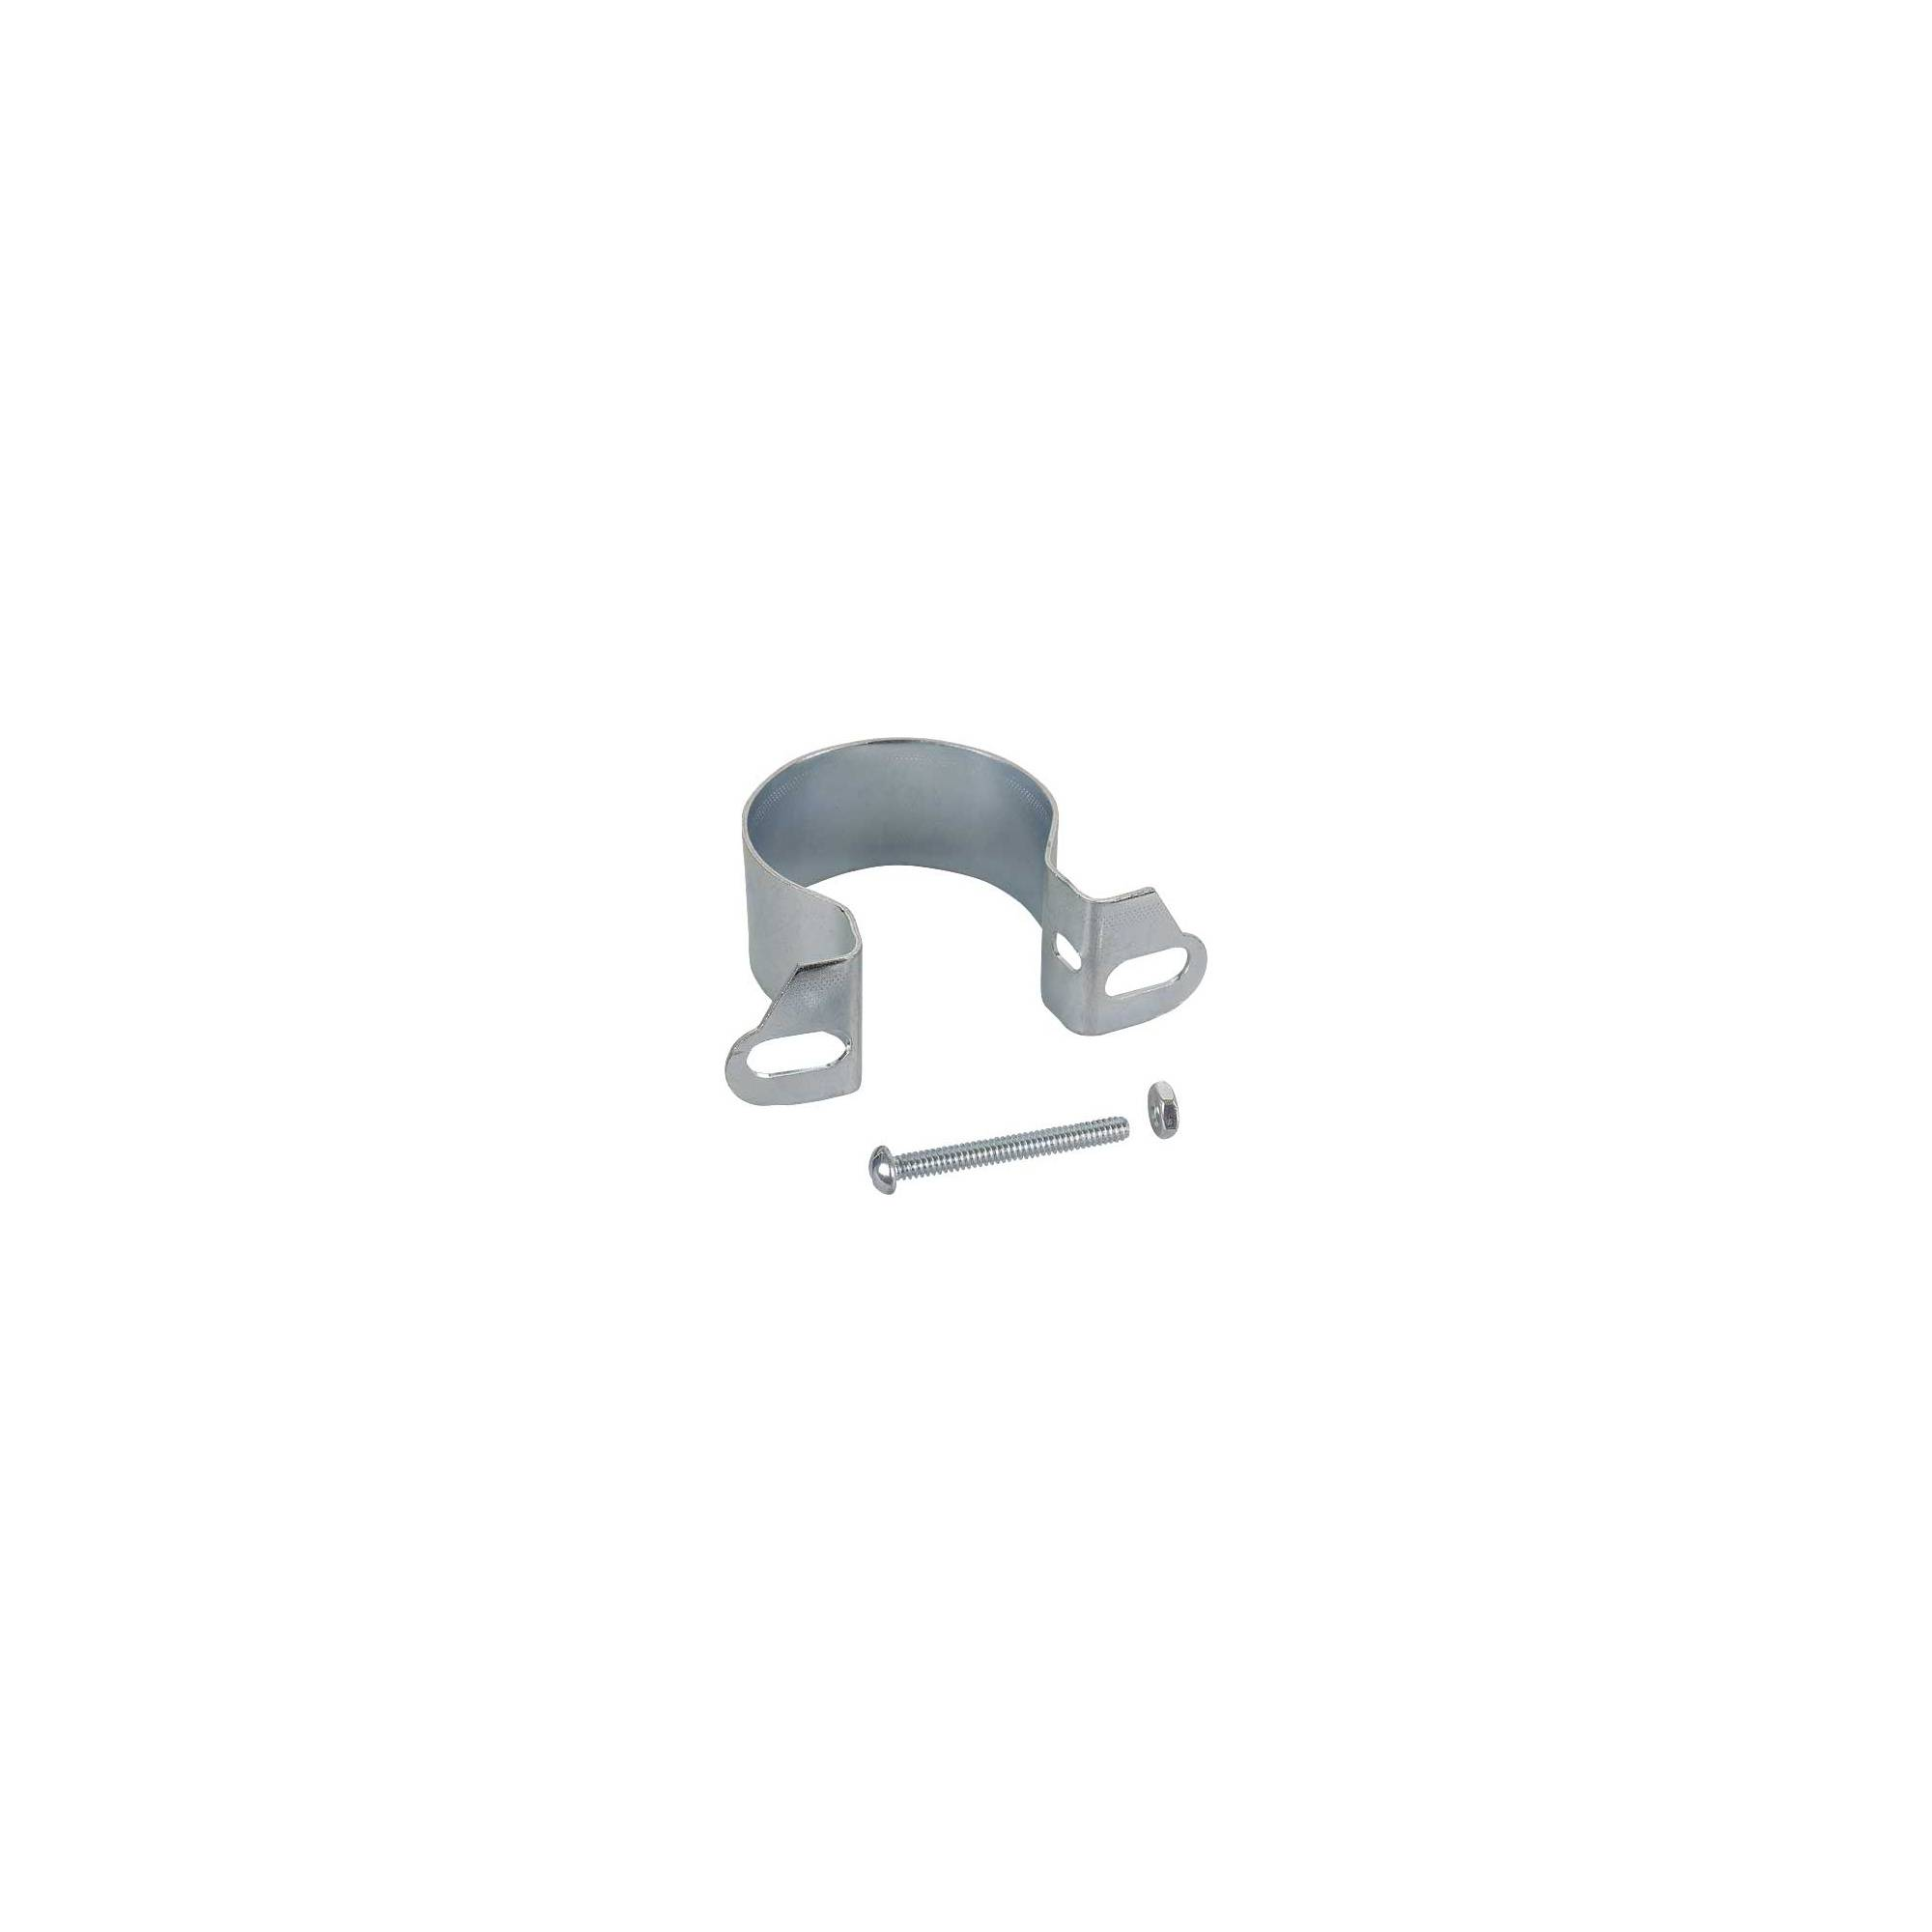 hight resolution of macs auto parts 28 26214 model a ford coil bracket plain steel with hardware walmart com